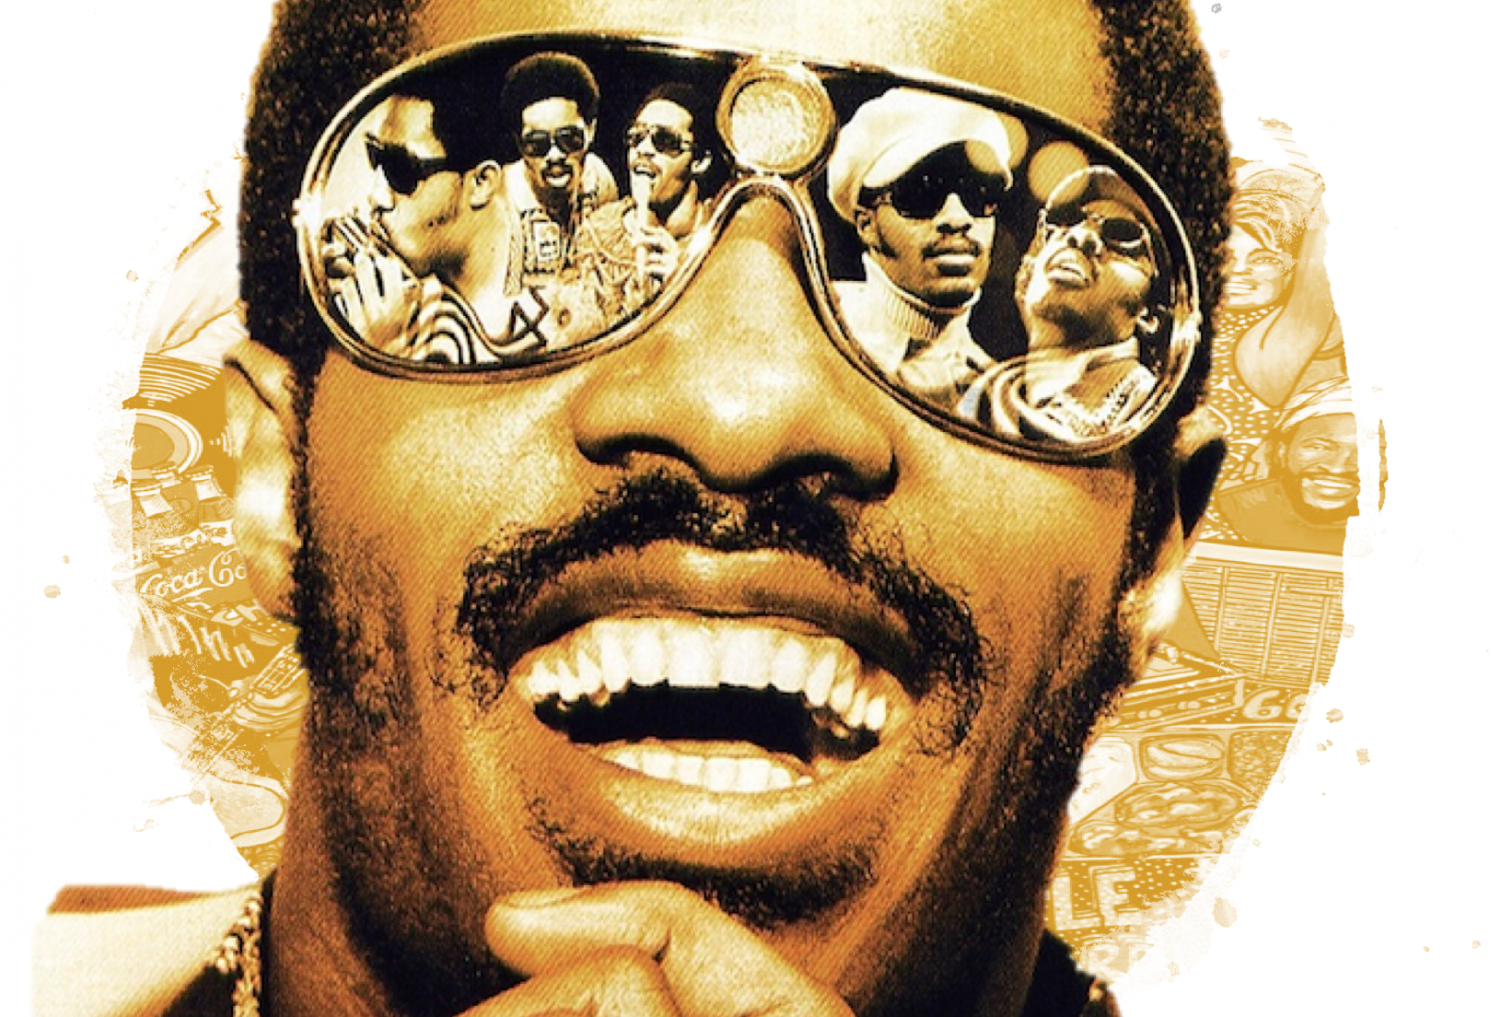 Read below to find out about just a few of Stevie Wonder's greatest tracks, and use the playlist below to listen to everything you read about in real time.